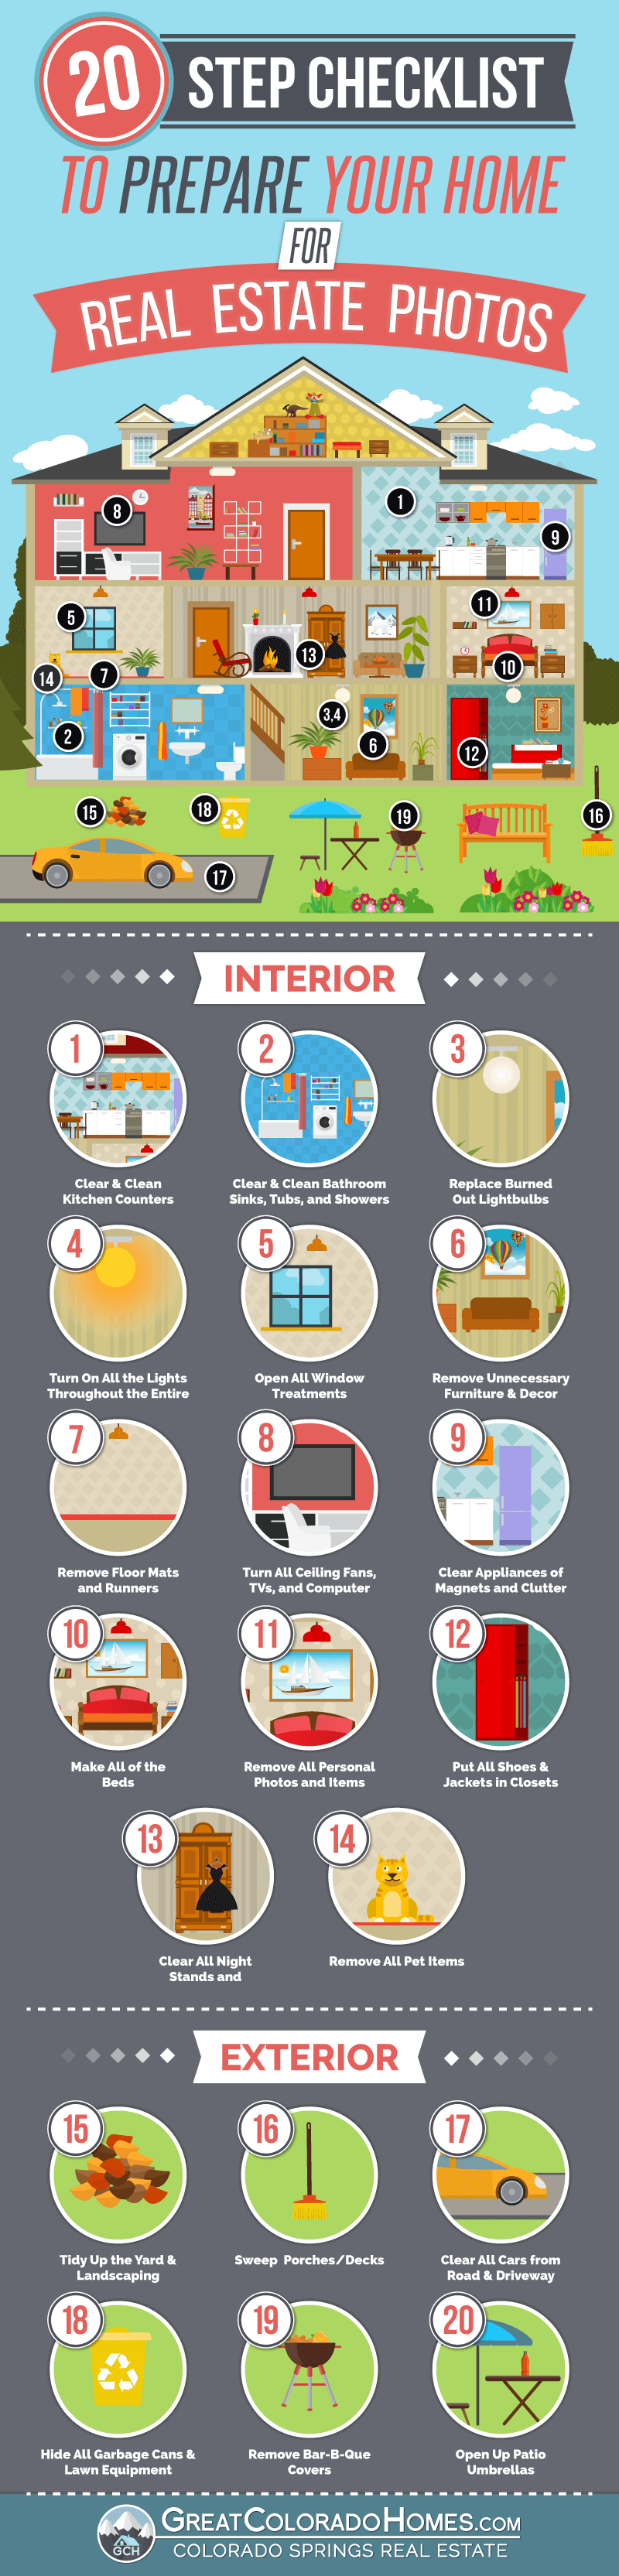 20 Step Checklist to Prepare Your Home For Real Estate Photos Infographic